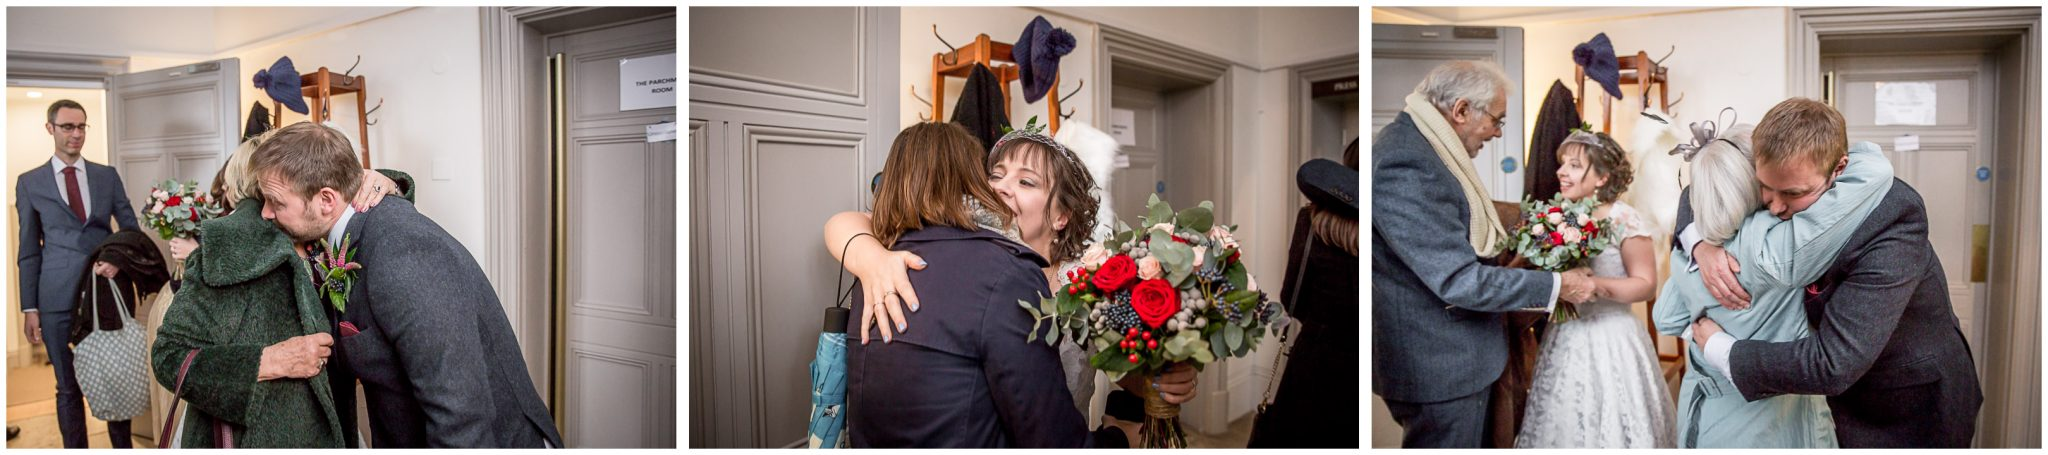 Castle Room Winchester wedding photography hugs outside ceremony room